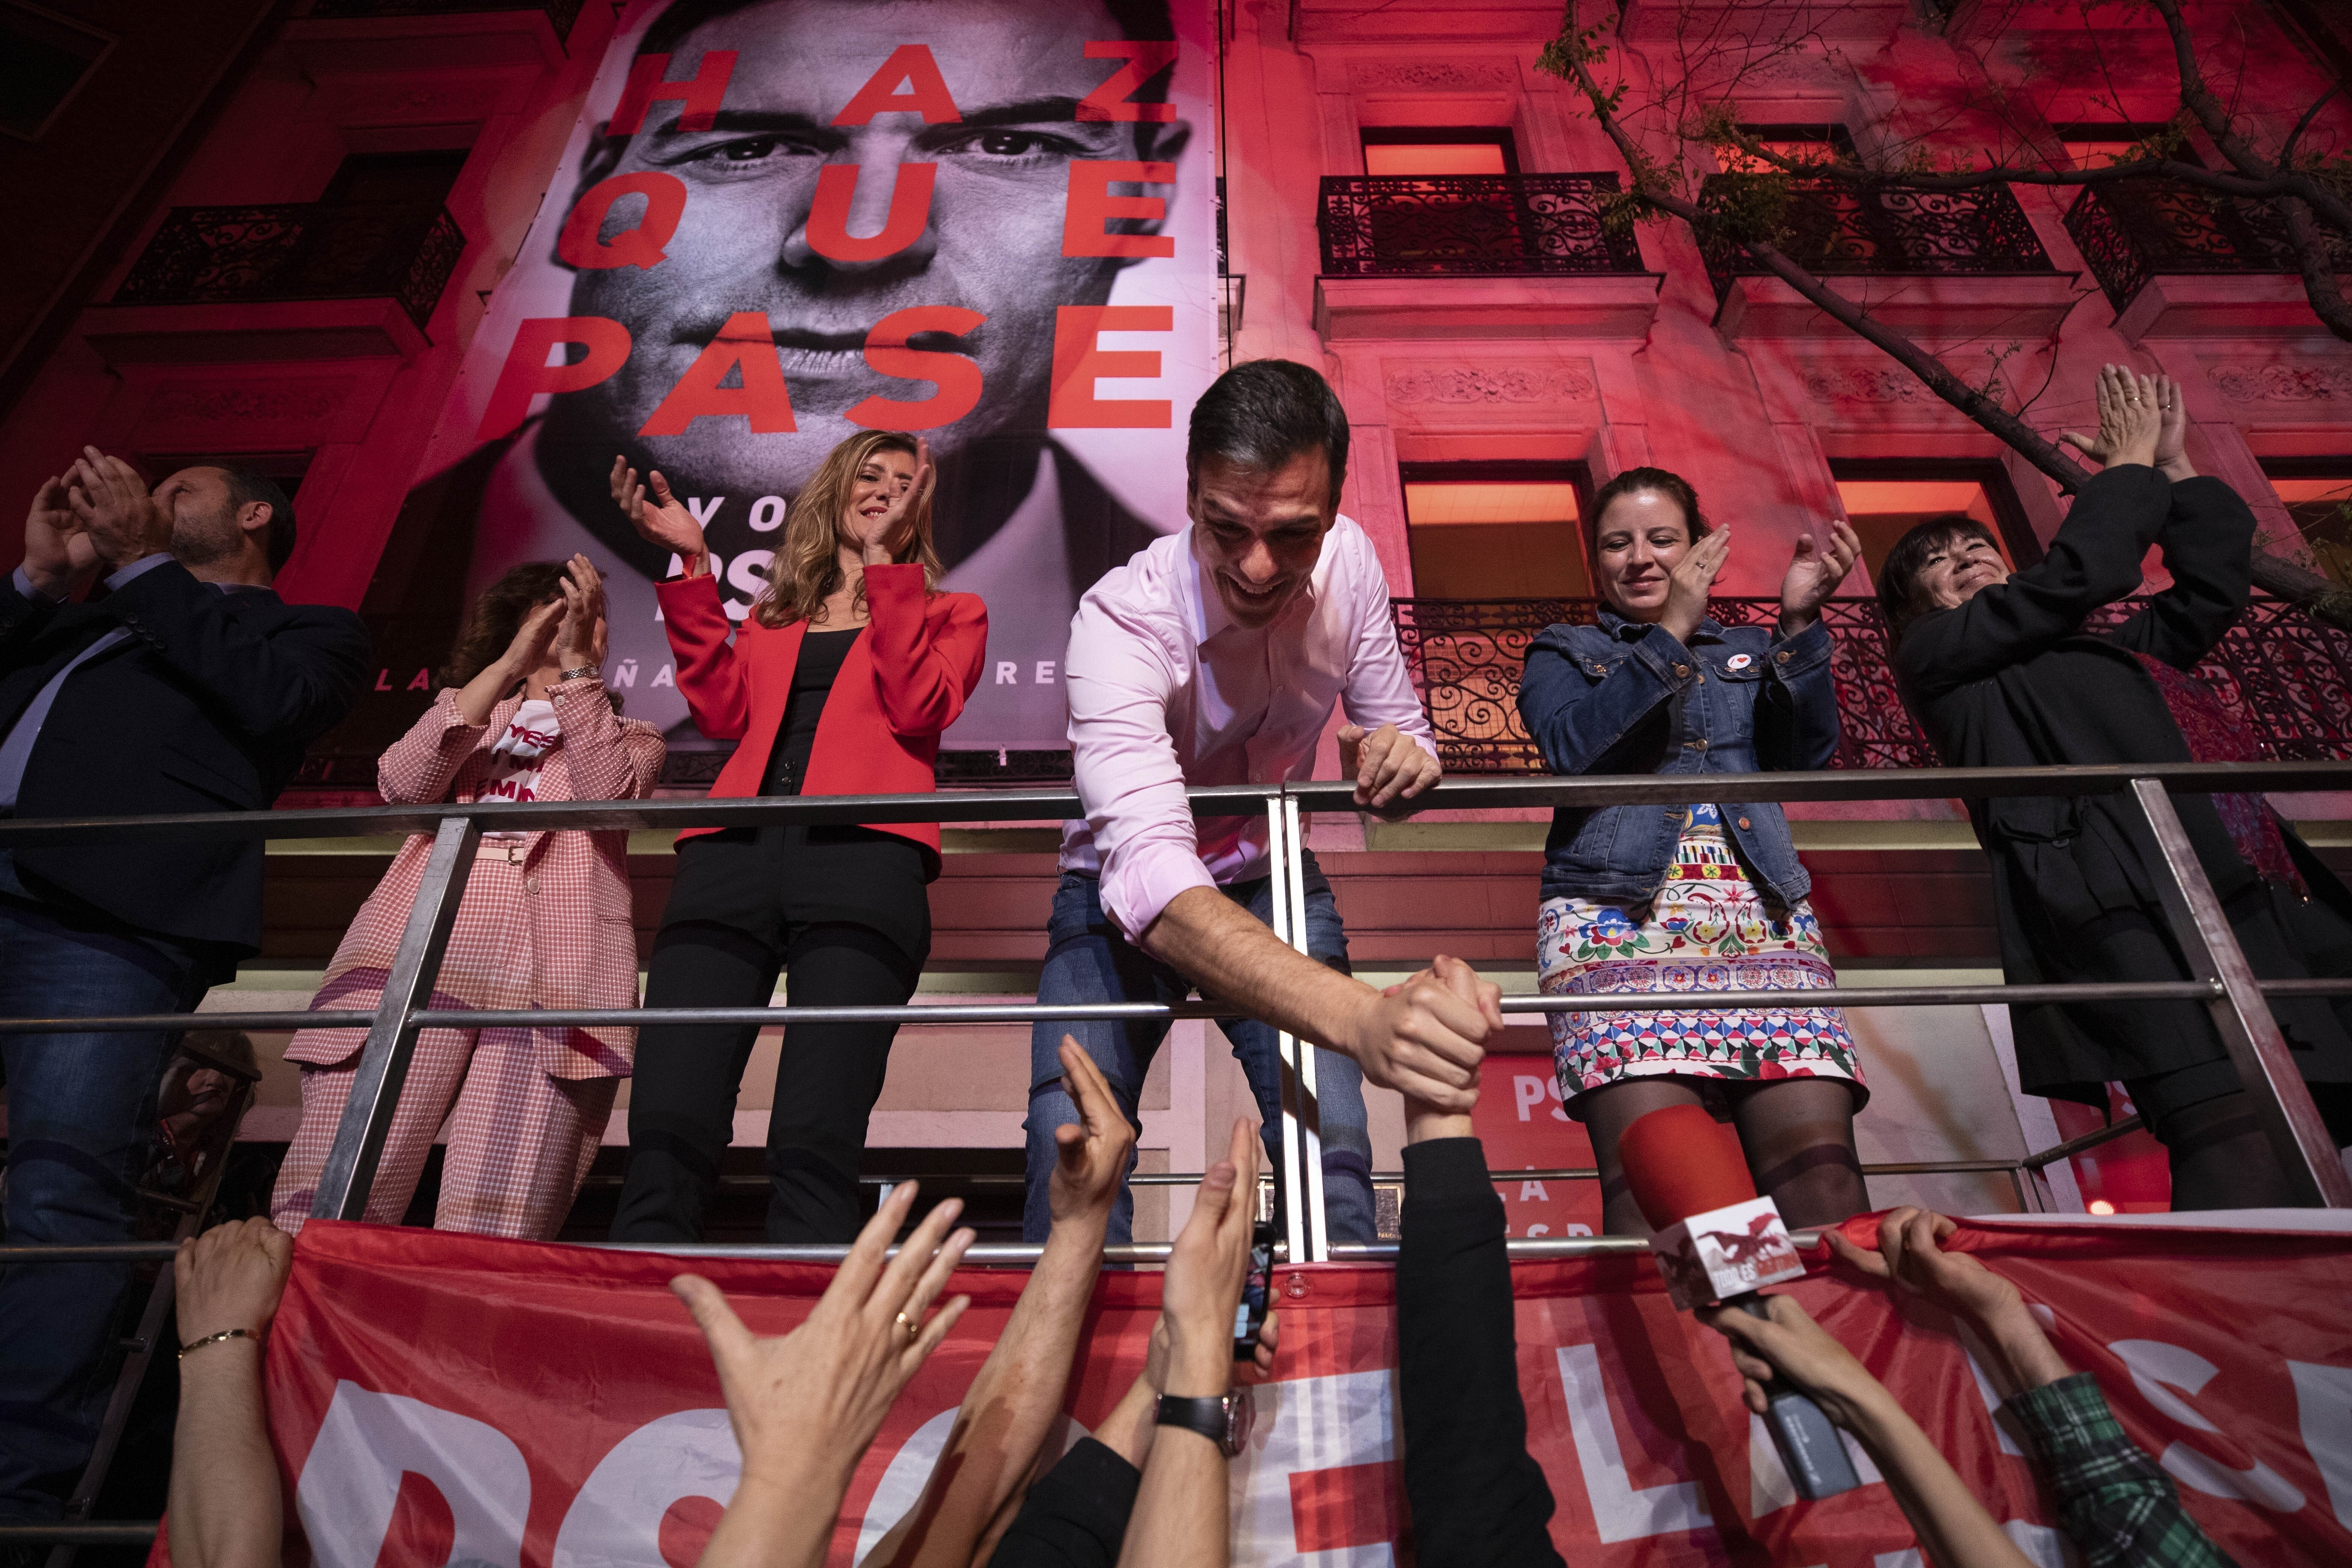 Socialist Party leader Pedro Sanchez shakes hands with supporters outside the party headquarters following the general electi